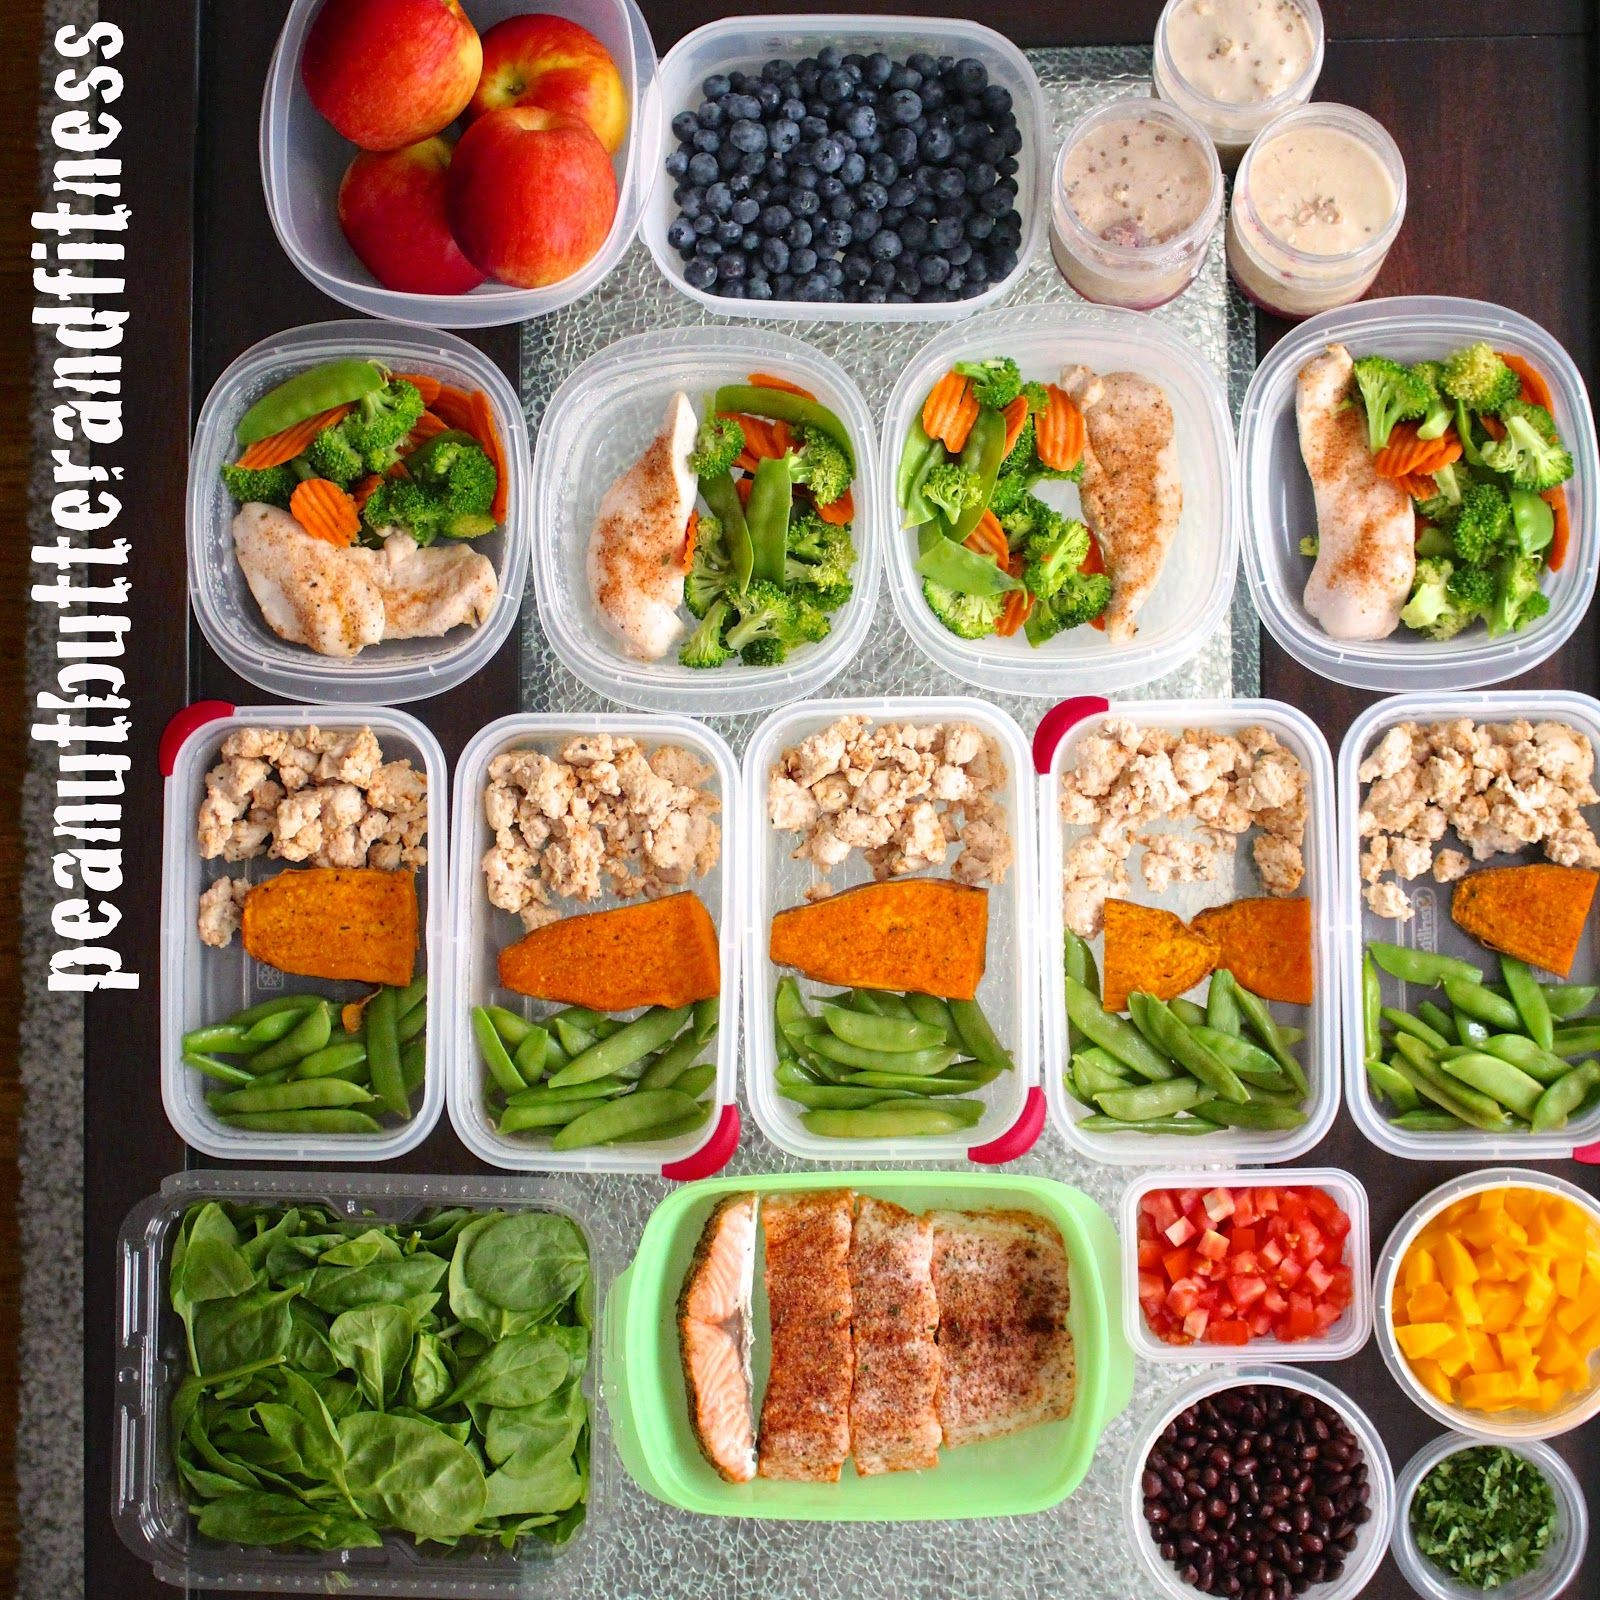 Meal prep ideas for one week - Check out my blog post for recipes and nutrition info. This week, my meal prepping includes: +Chili Lime Salmon Salad +Baked chicken with steamed broccoli stir fry vegetables served with Little Soya soy sauce +Ground turkey with baked sweet potato and sugar snap peas +PB&J Overnight Oats #MealPrepMonday